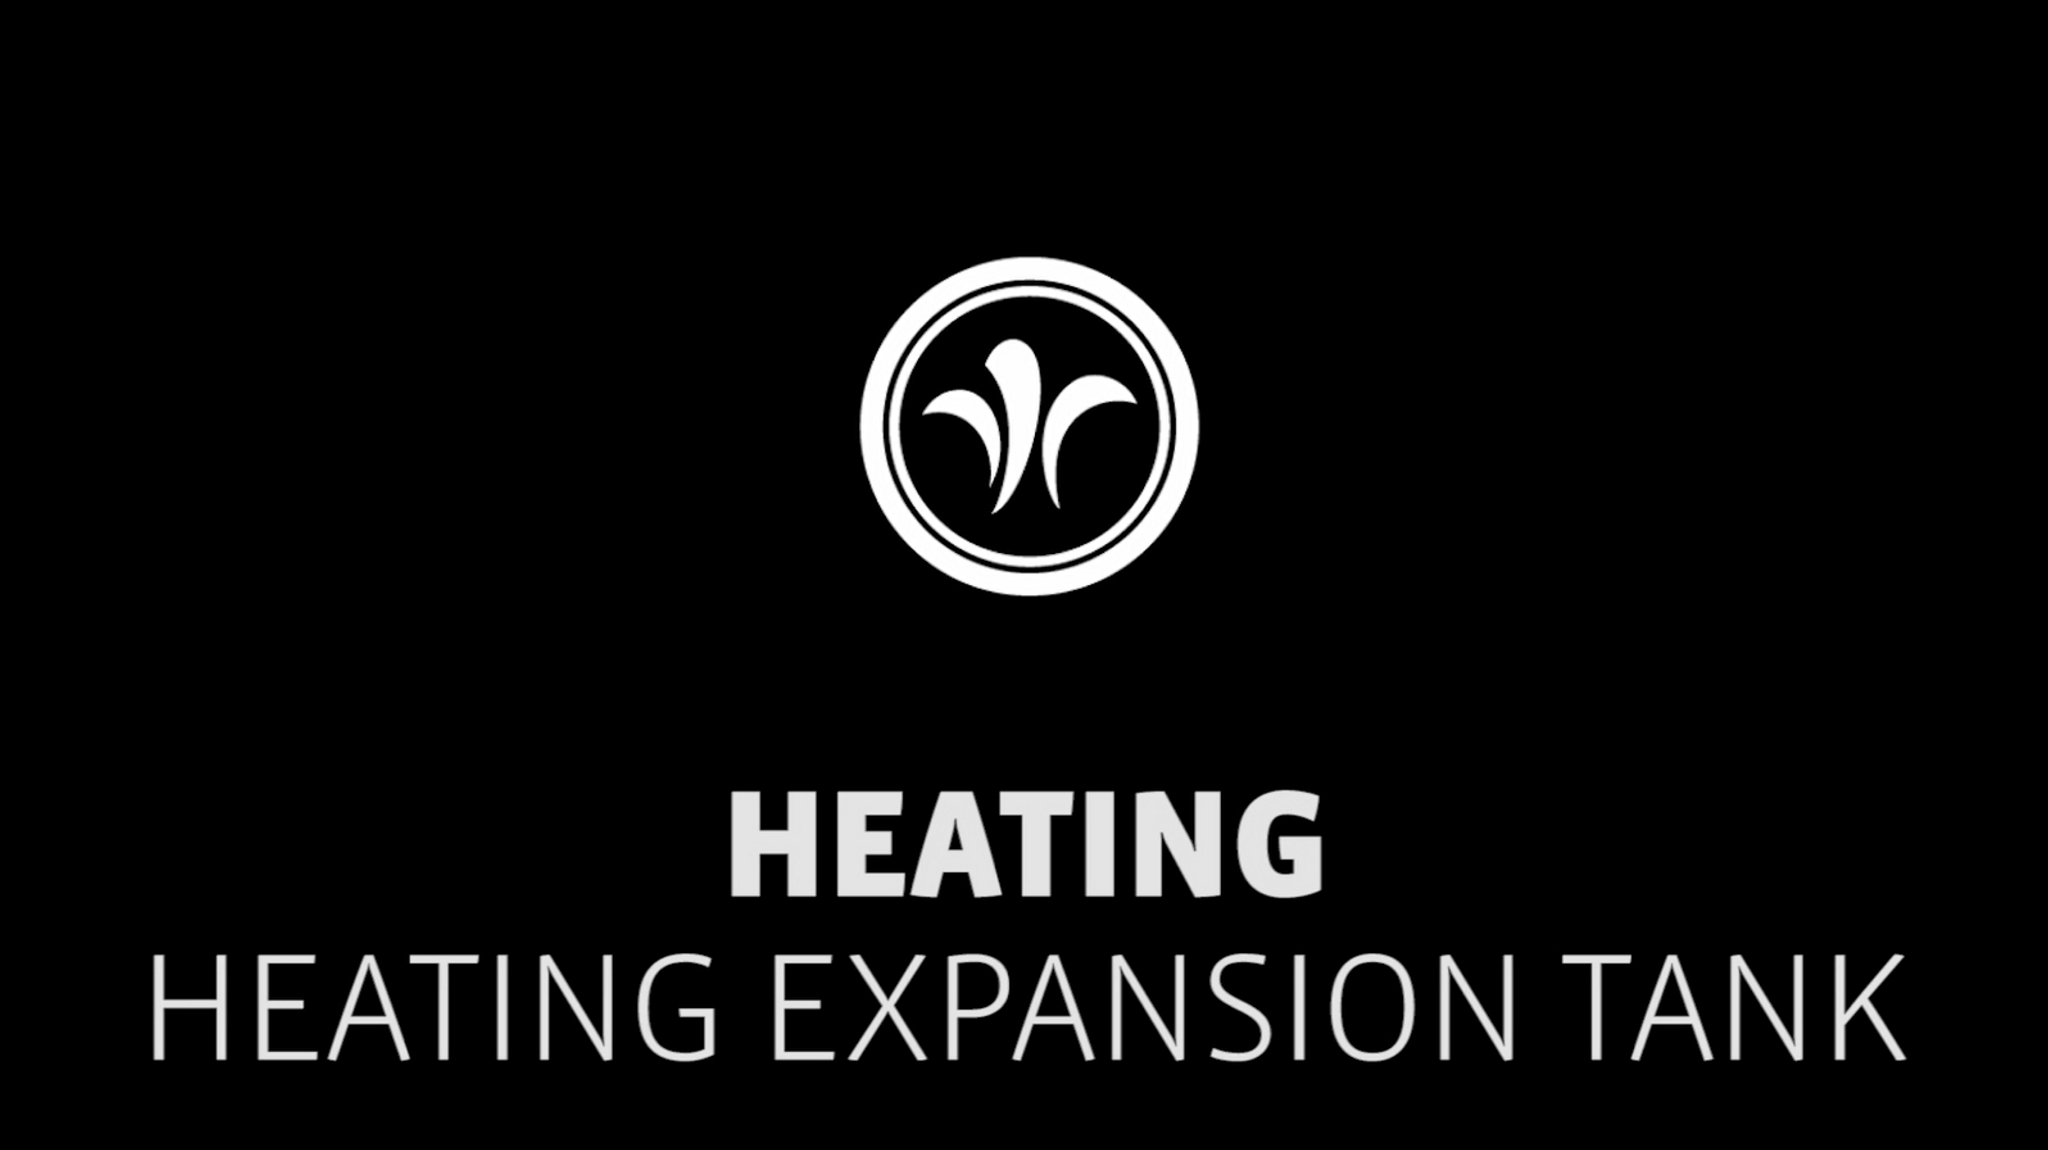 motorhome heating expansion tank // niesmann+bischoff - luxury motorhome (model FLAIR) // 2019 // H3